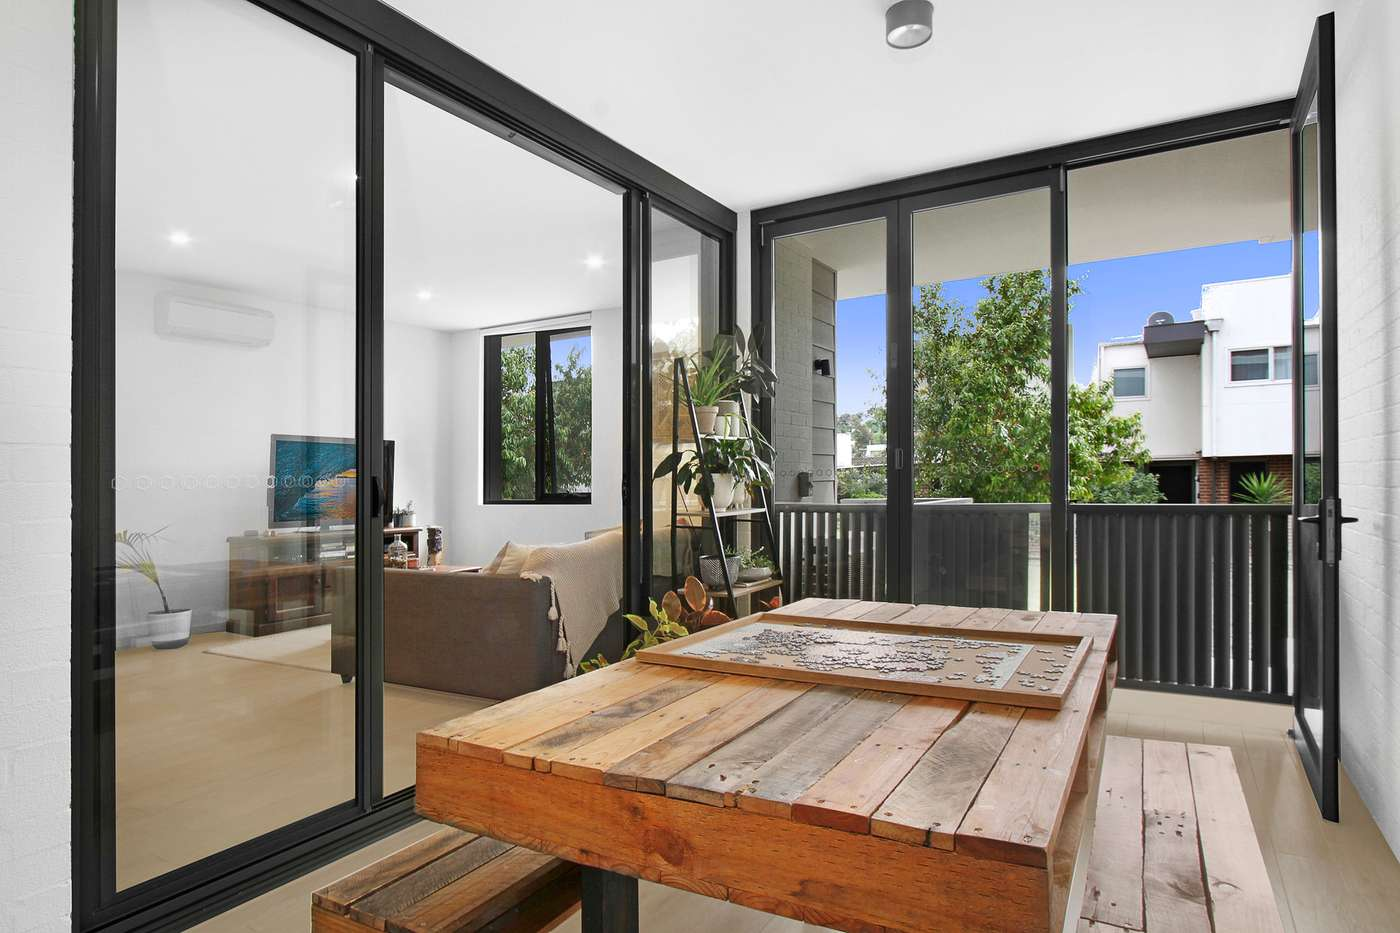 Main view of Homely apartment listing, 106/24-32 Koorine Street, Ermington, NSW 2115